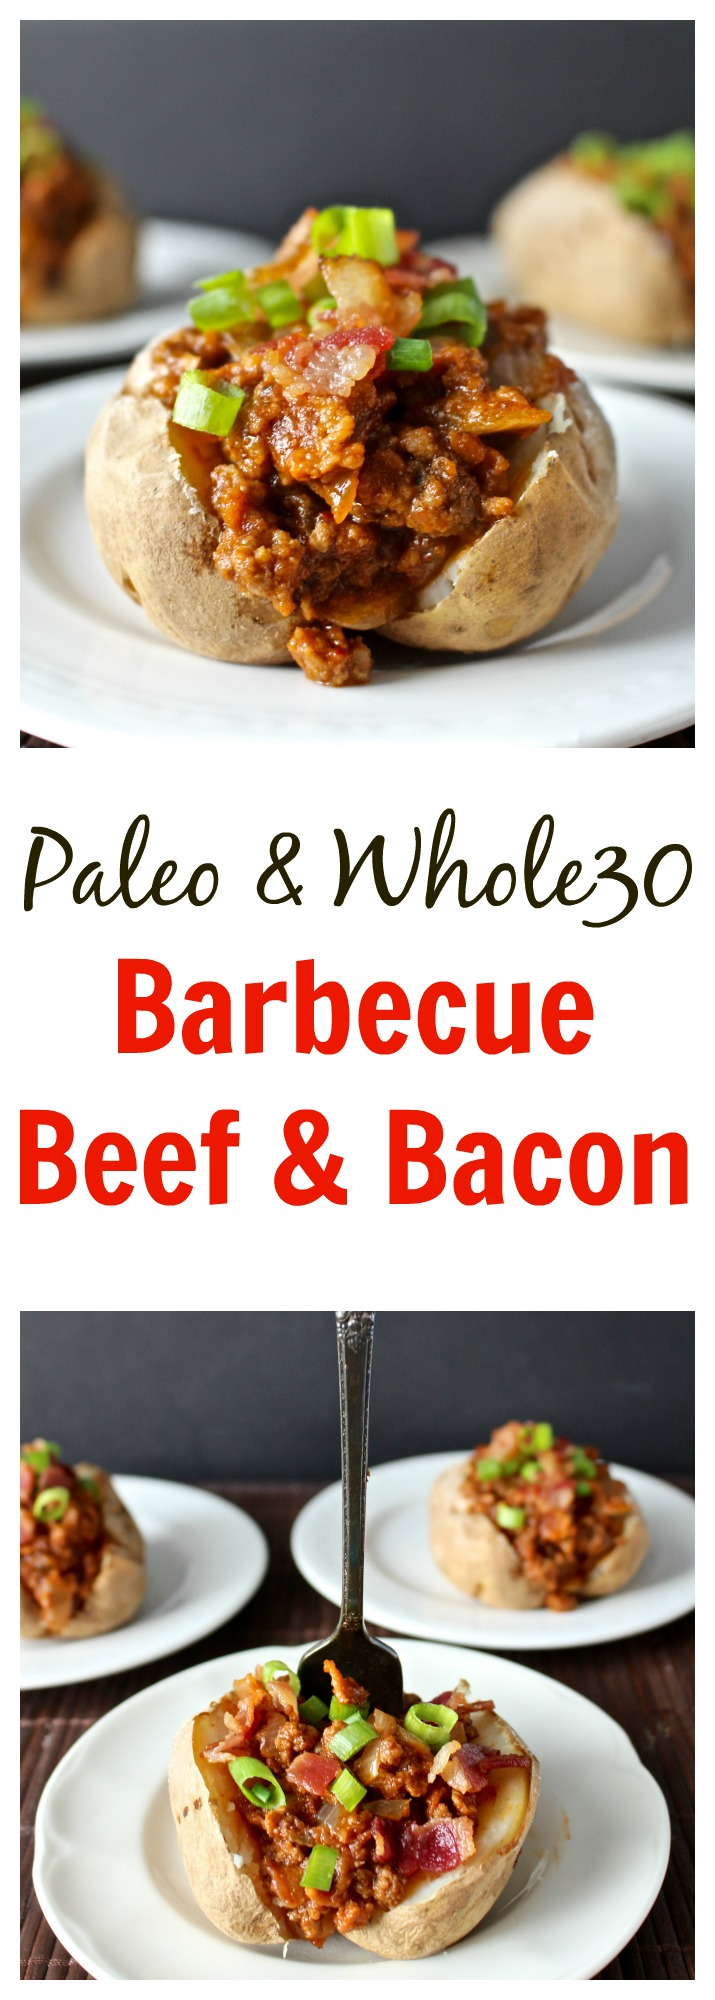 Paleo Barbecue Beef and Bacon